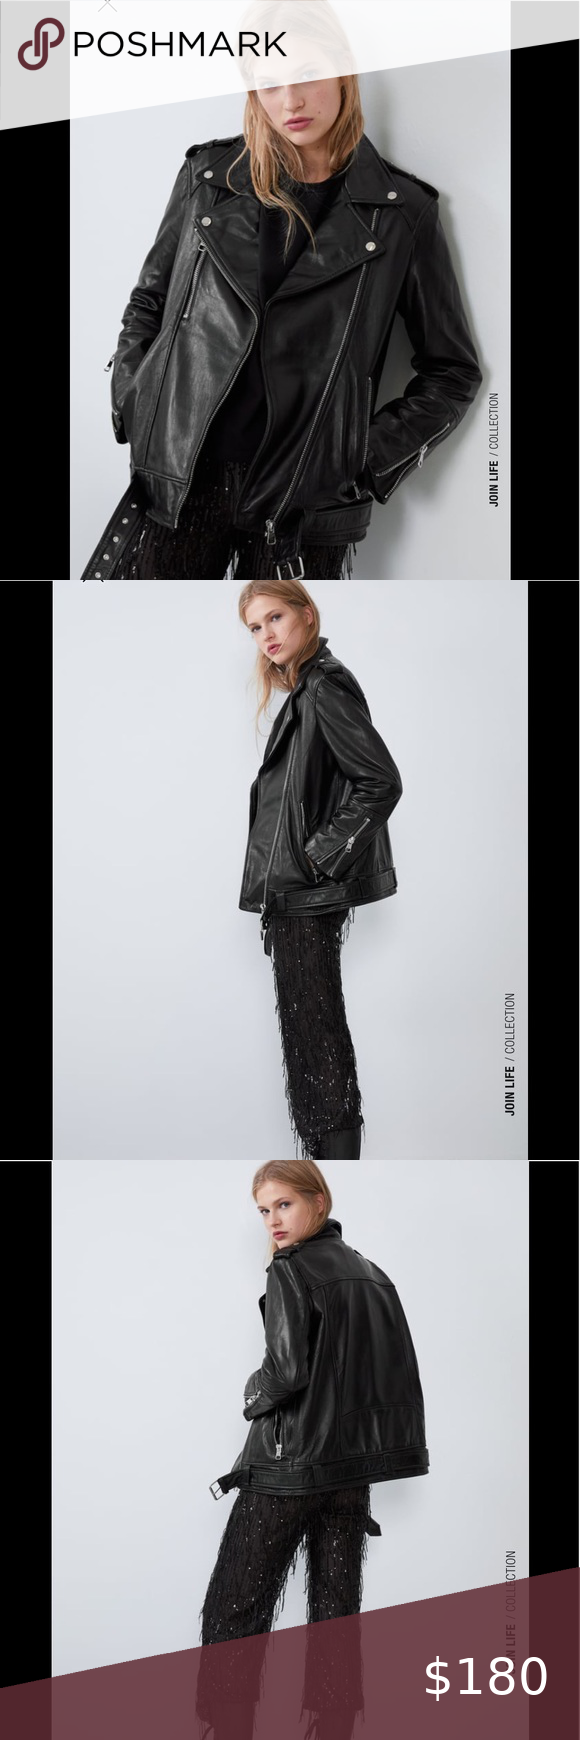 Oversized Leather Jacket Brand New With Tag Zara Real Leather Biker Jacket 100 Sheep Leather Lining 100 Polyeste Leather Jacket Brands Leather Jacket Fashion [ 1740 x 580 Pixel ]